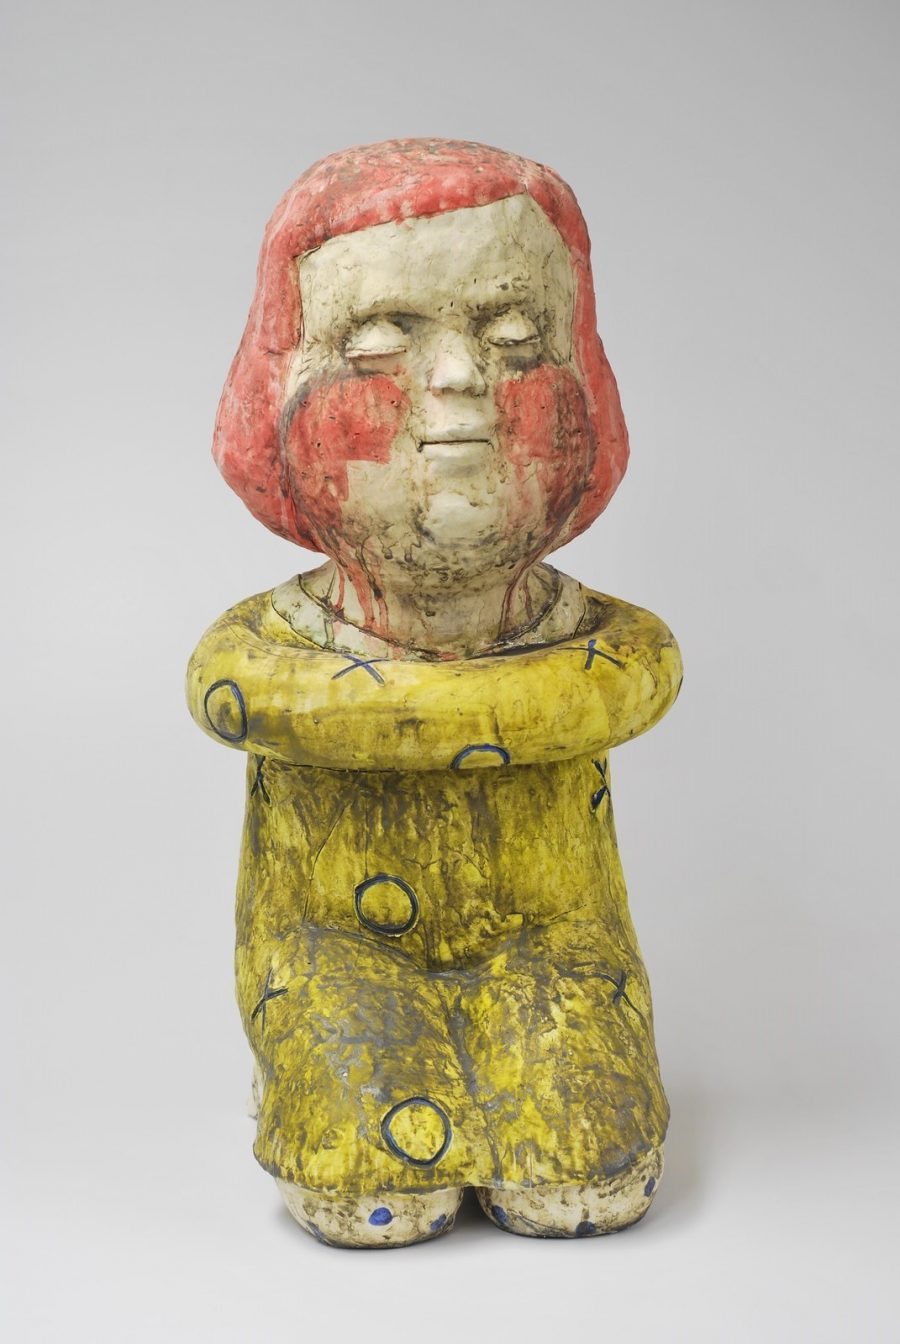 Seated figure (red head seated girl figure) - Title: Seated figure (red head seated girl figure)